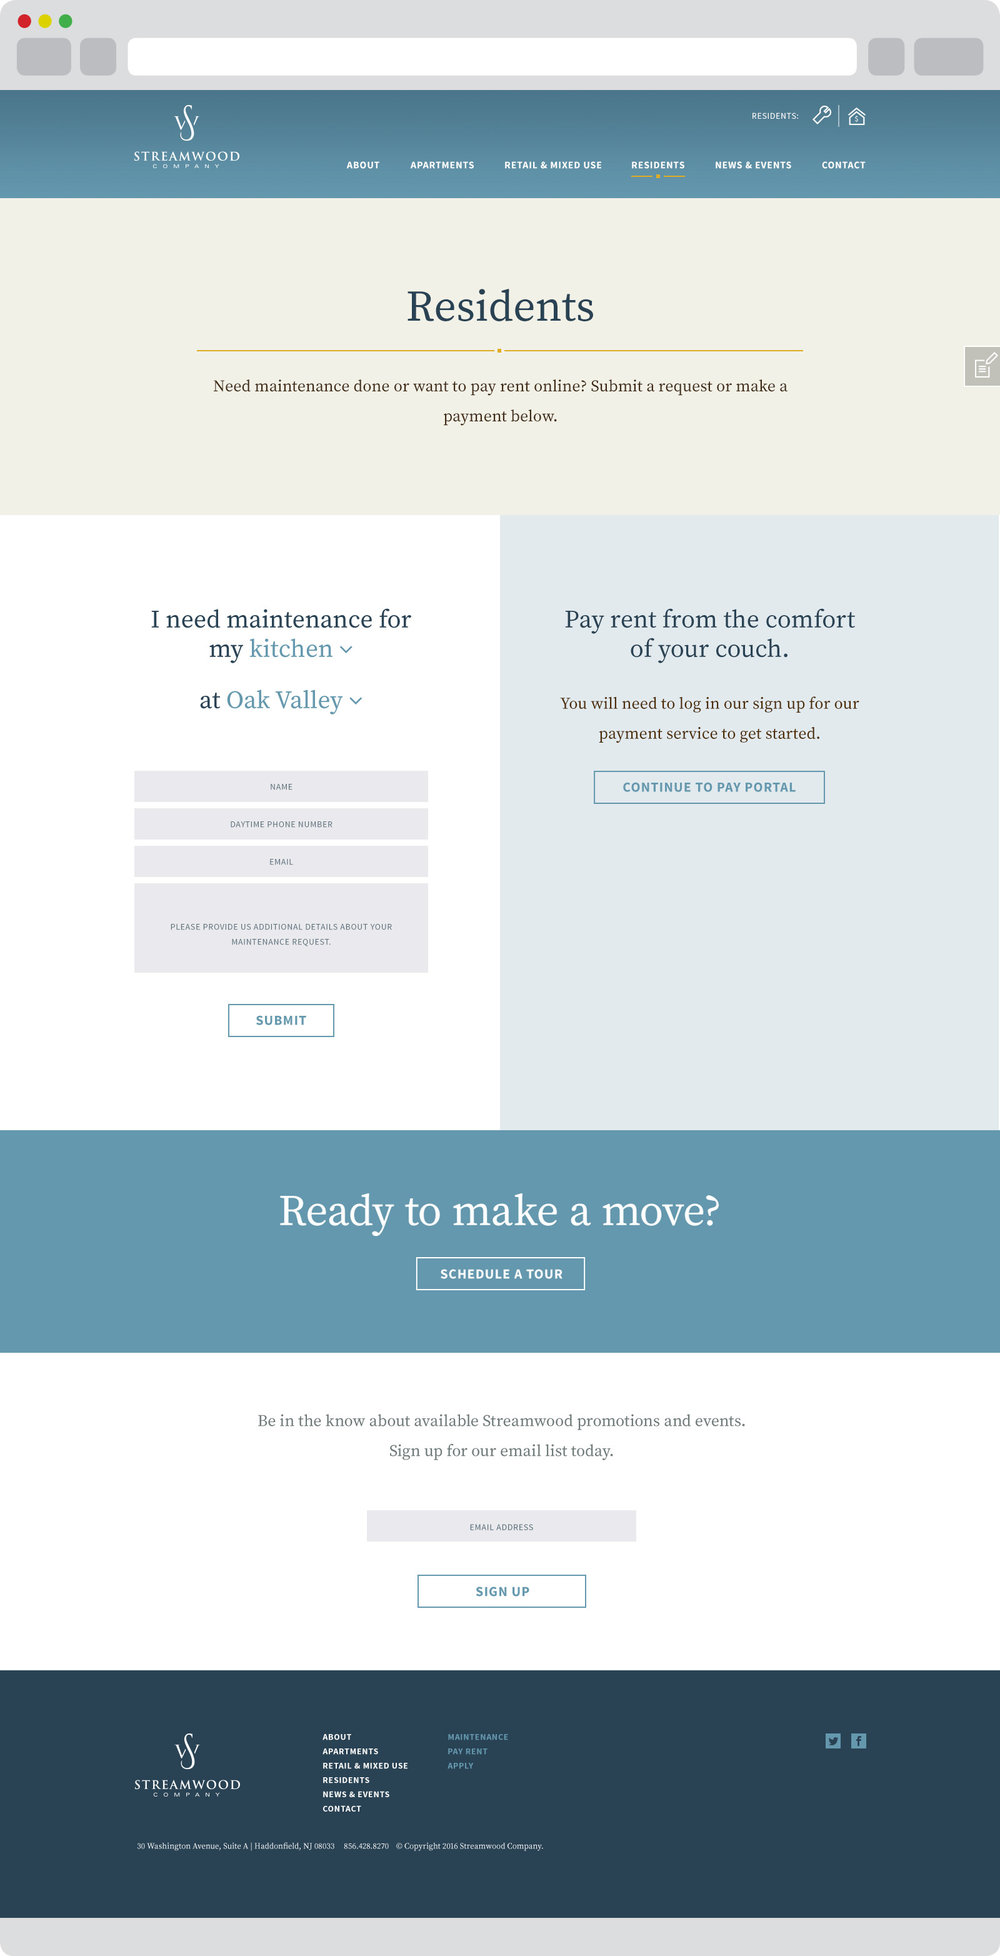 julierado-streamwood-residents-flat-browser-mockup-fs.jpg